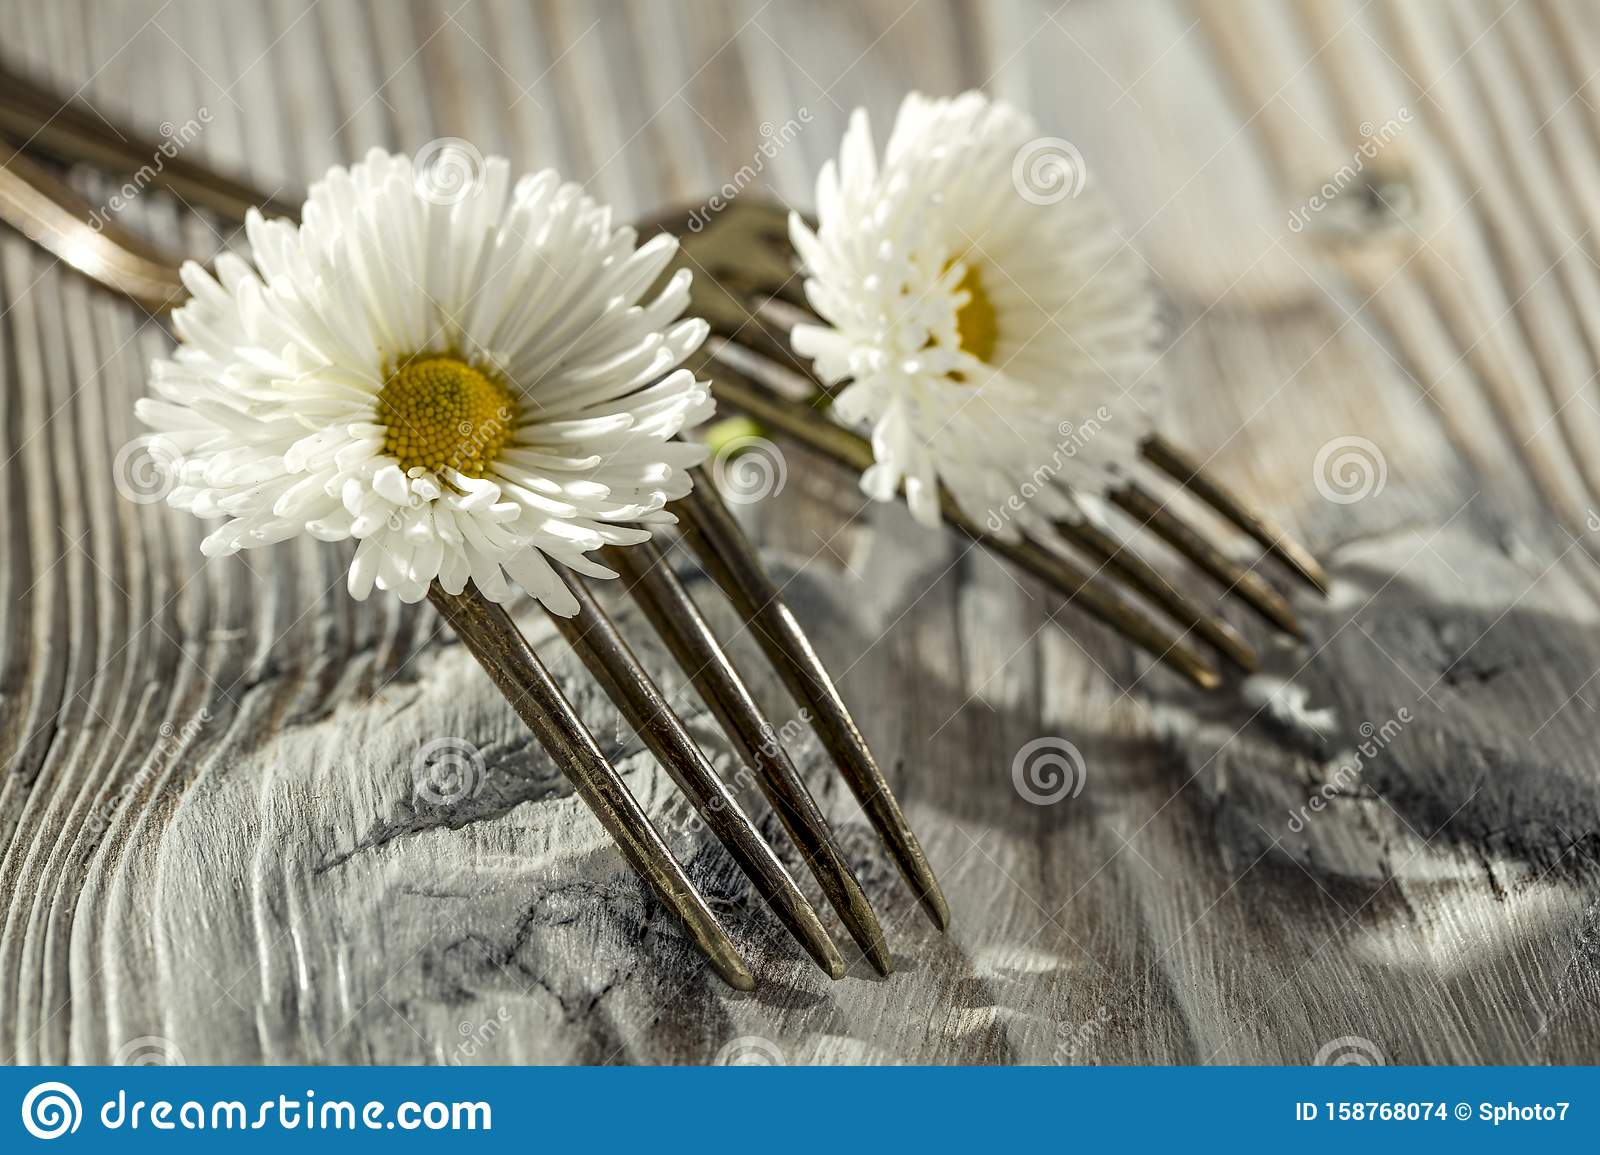 Two crossed forks with small white flowers on vintage wooden board background